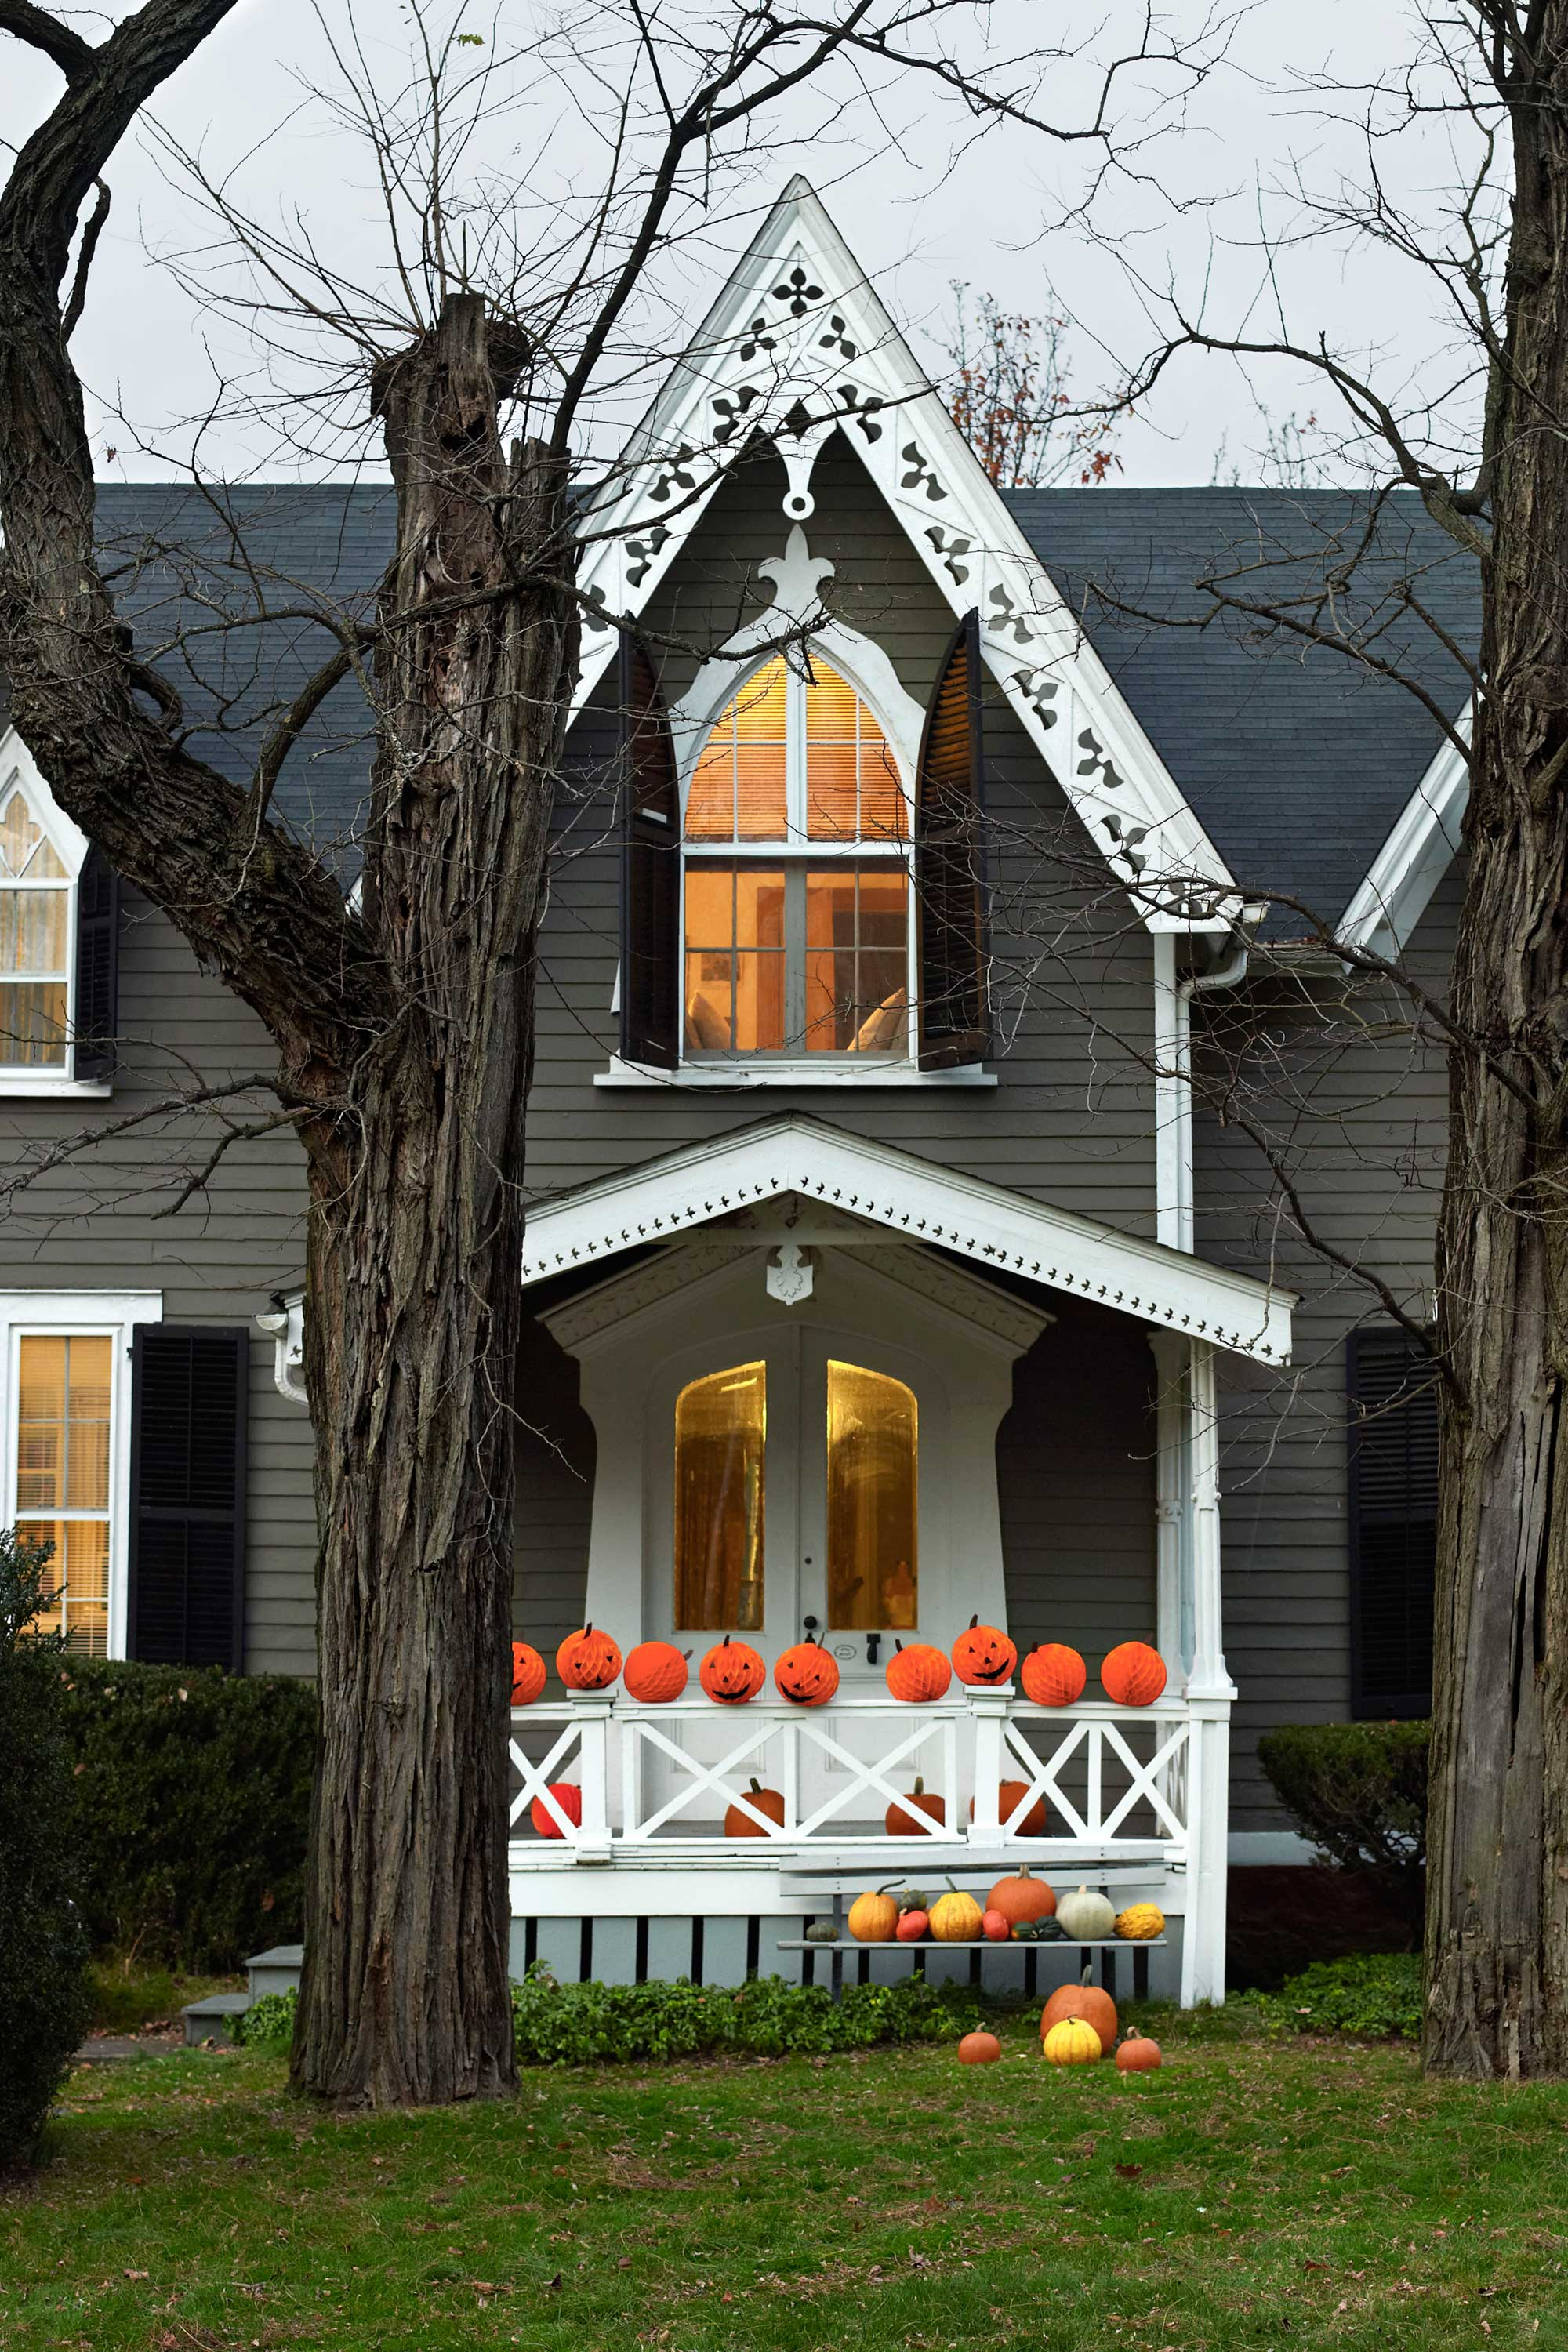 decoration ideas easy halloween yard and porch download - Halloween Outside Decor